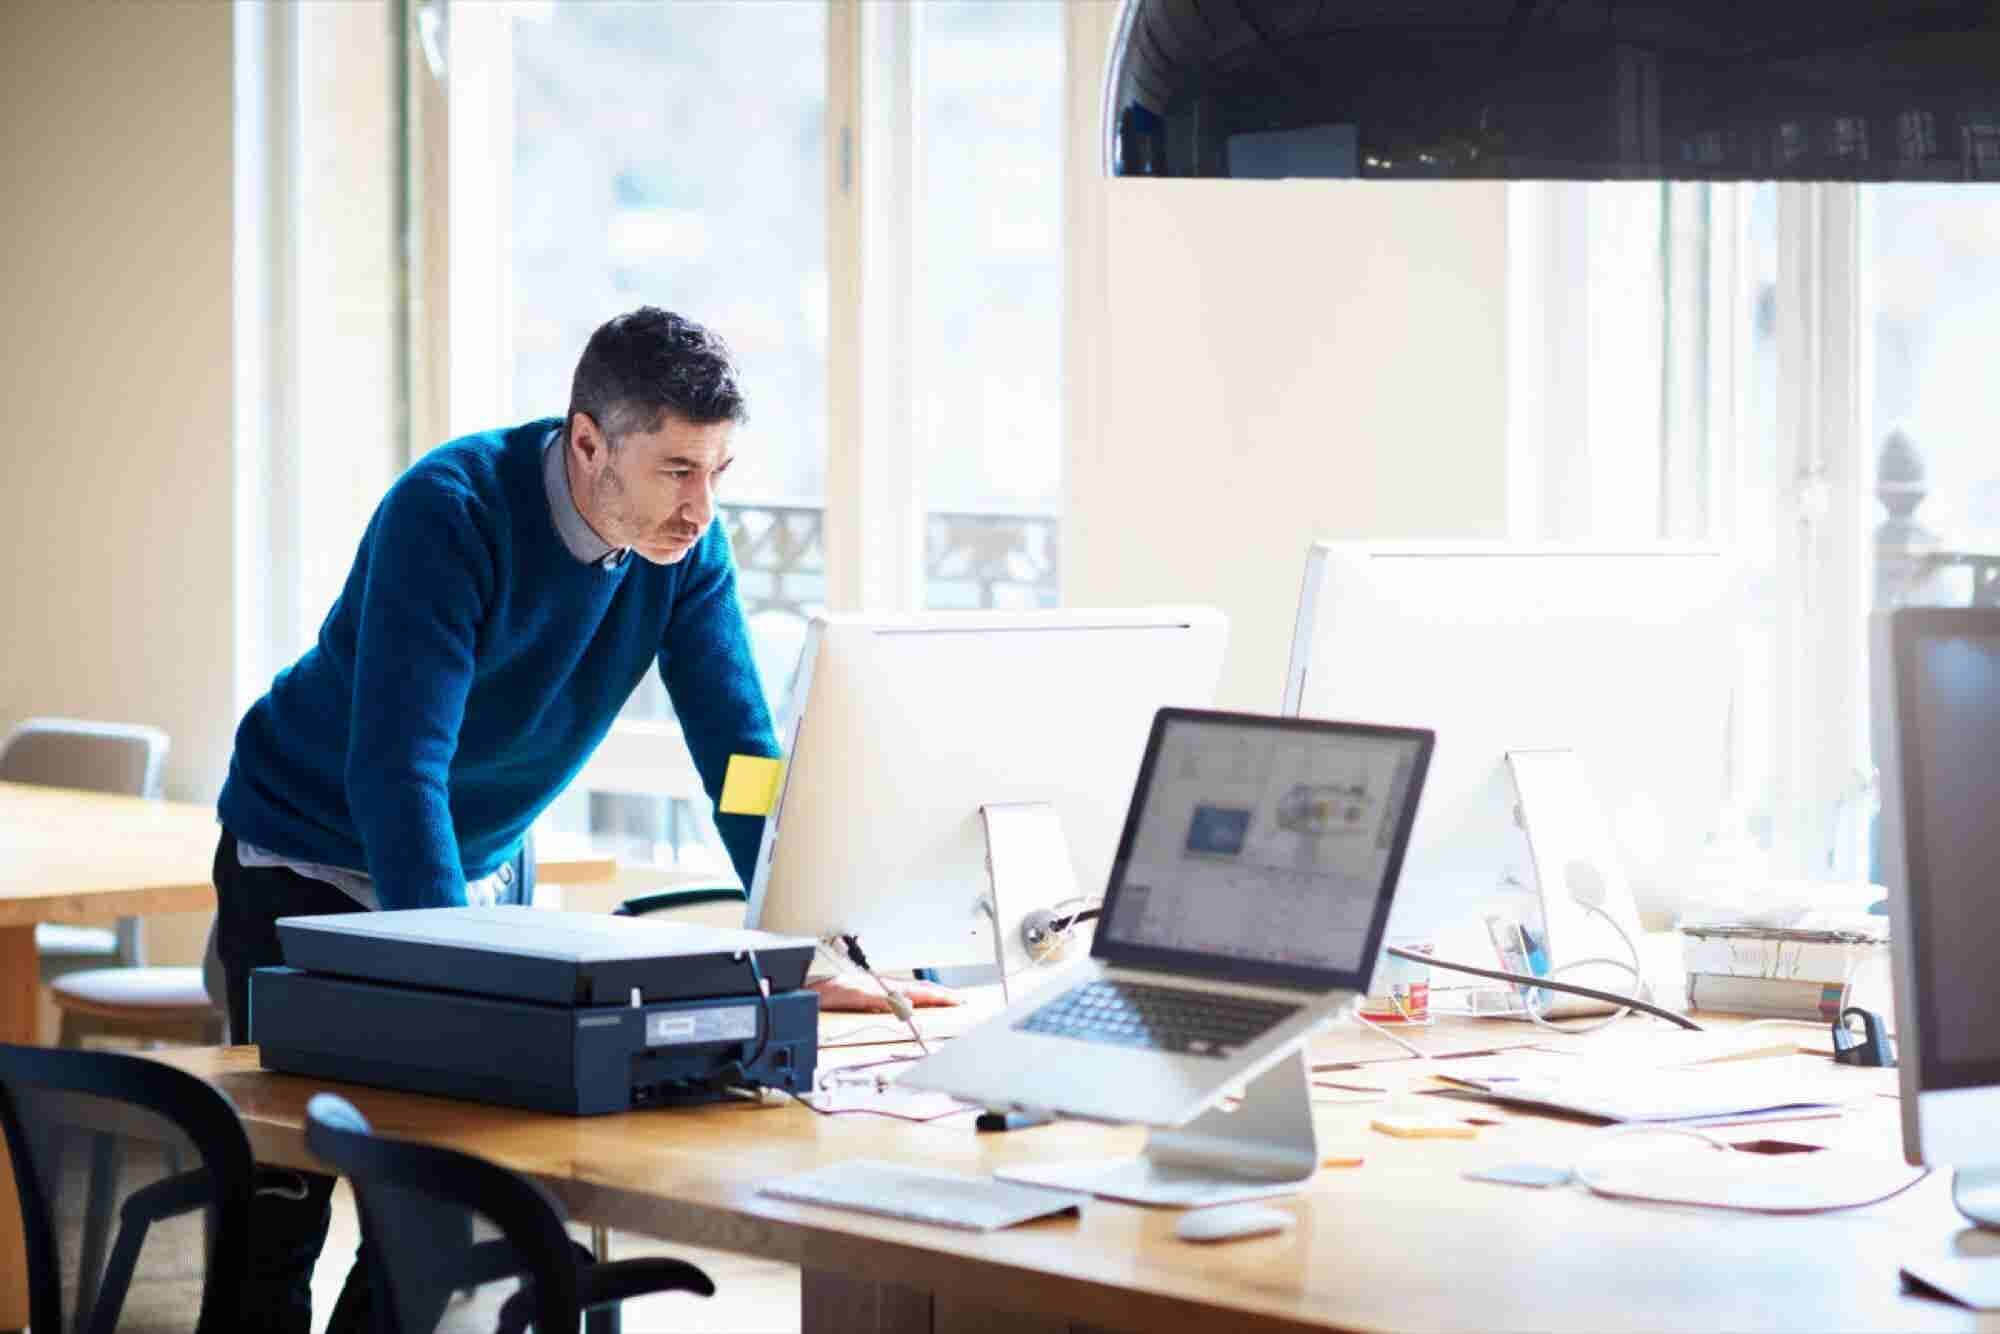 5 Reasons Why Workplace Anxiety Is Costing Your Business a Fortune